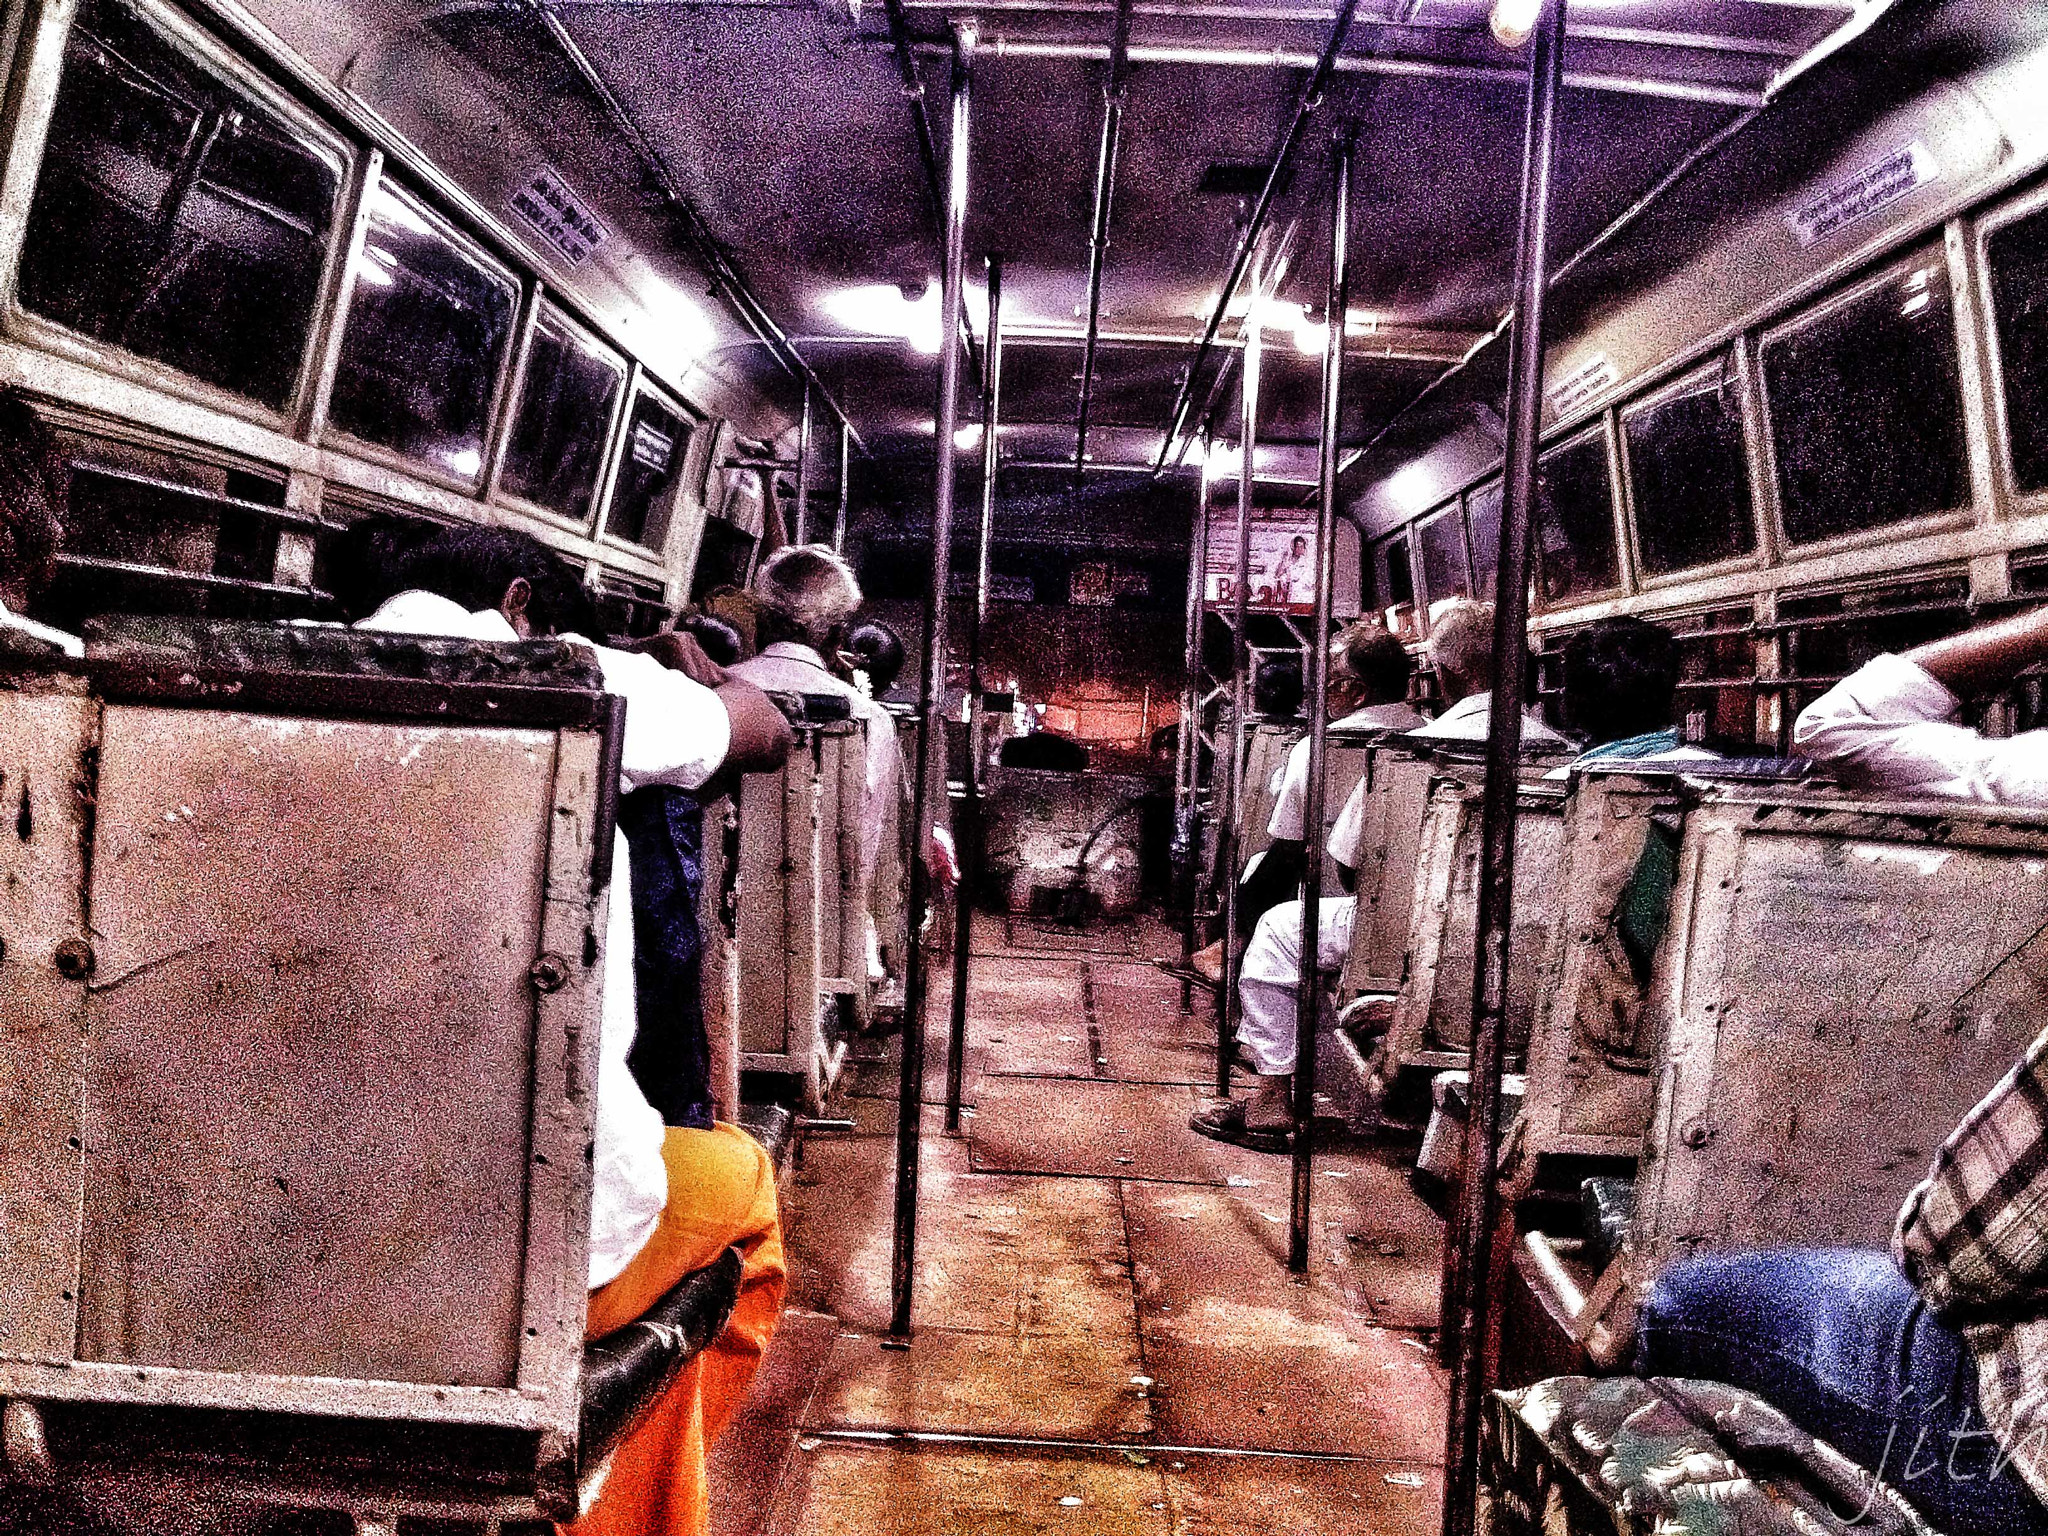 Photograph in town bus - iPhone 4s by inderjith gowthaman on 500px